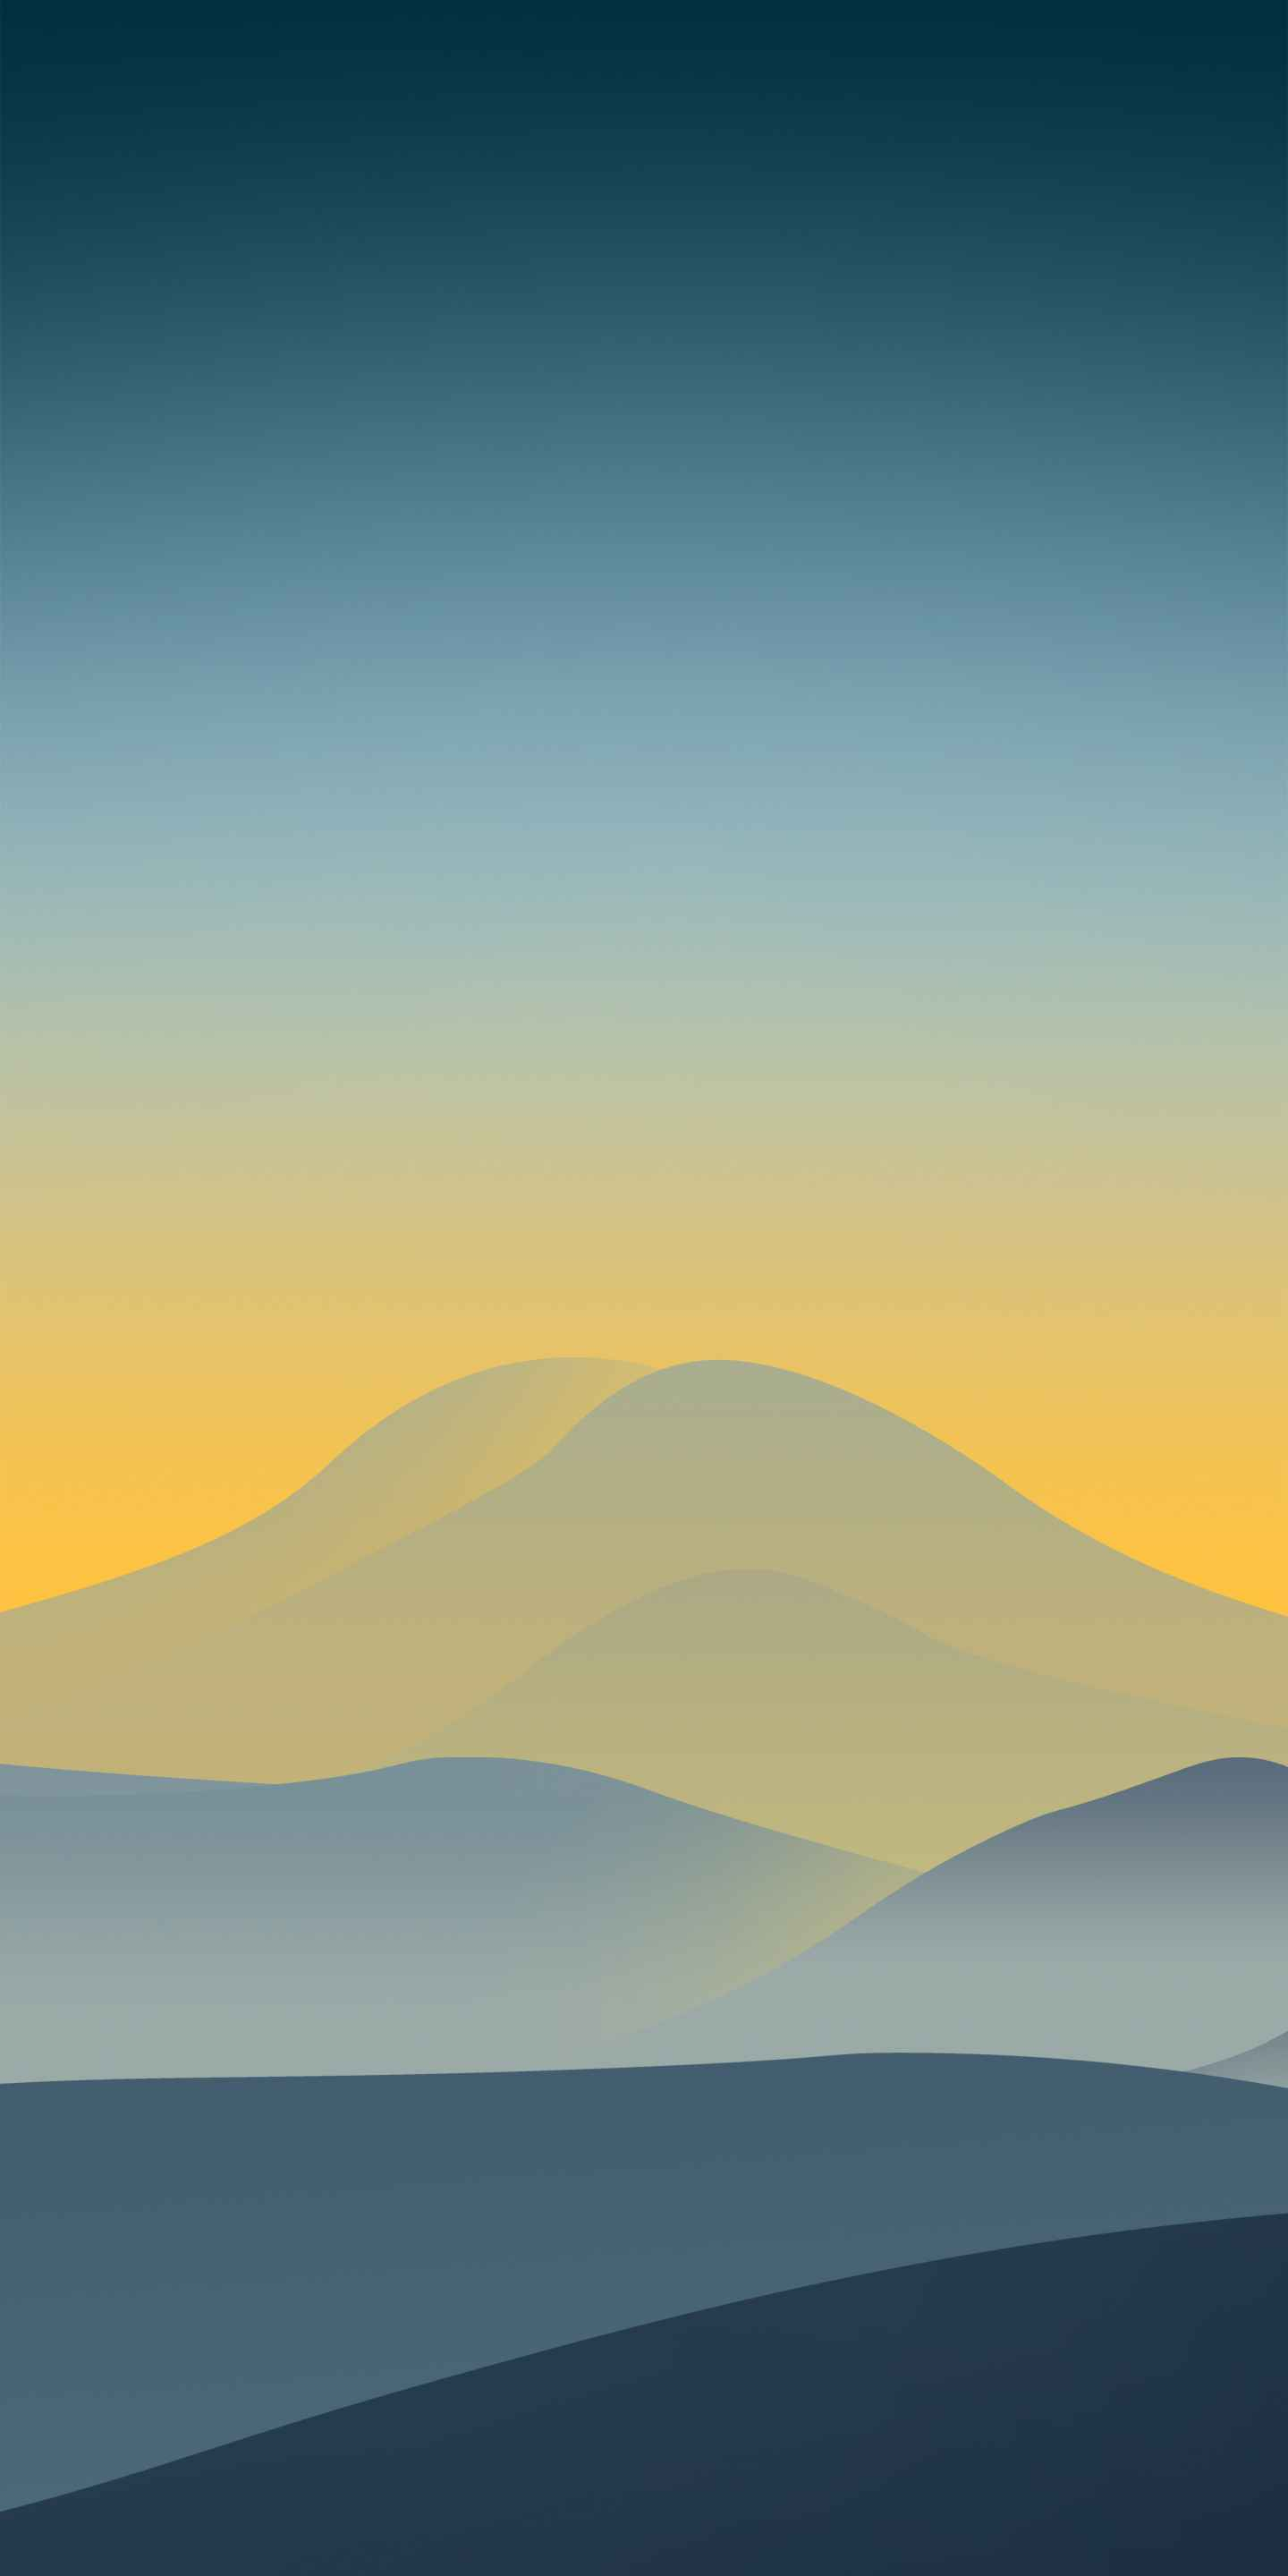 Desert Mountain Minimal iPhone Wallpaper